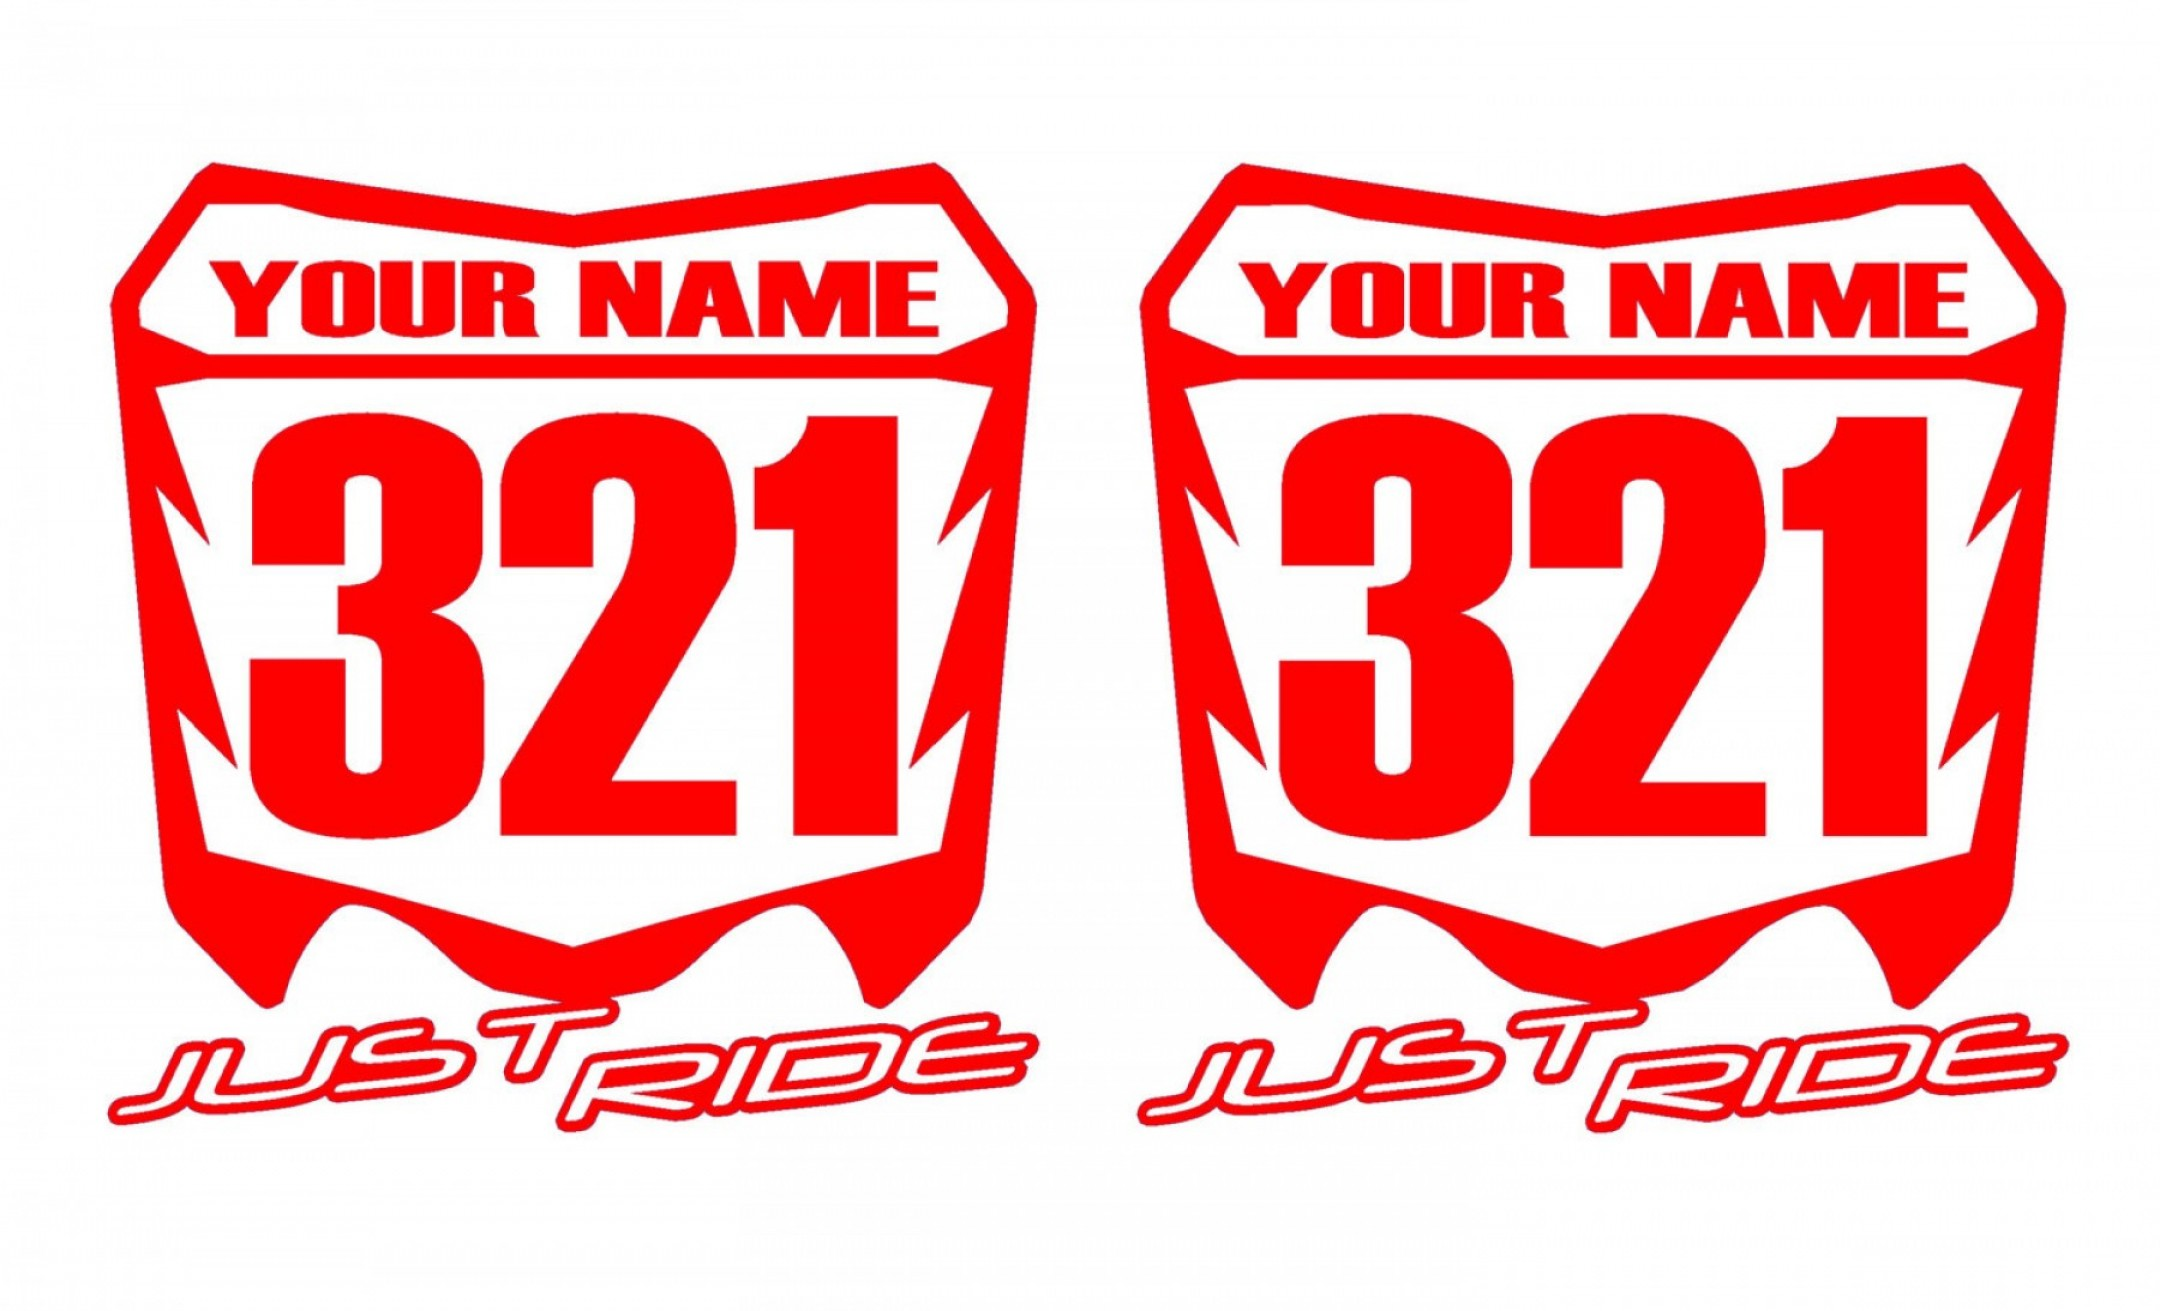 2160x1311 Vector Art License Plate Numbers Rongholland